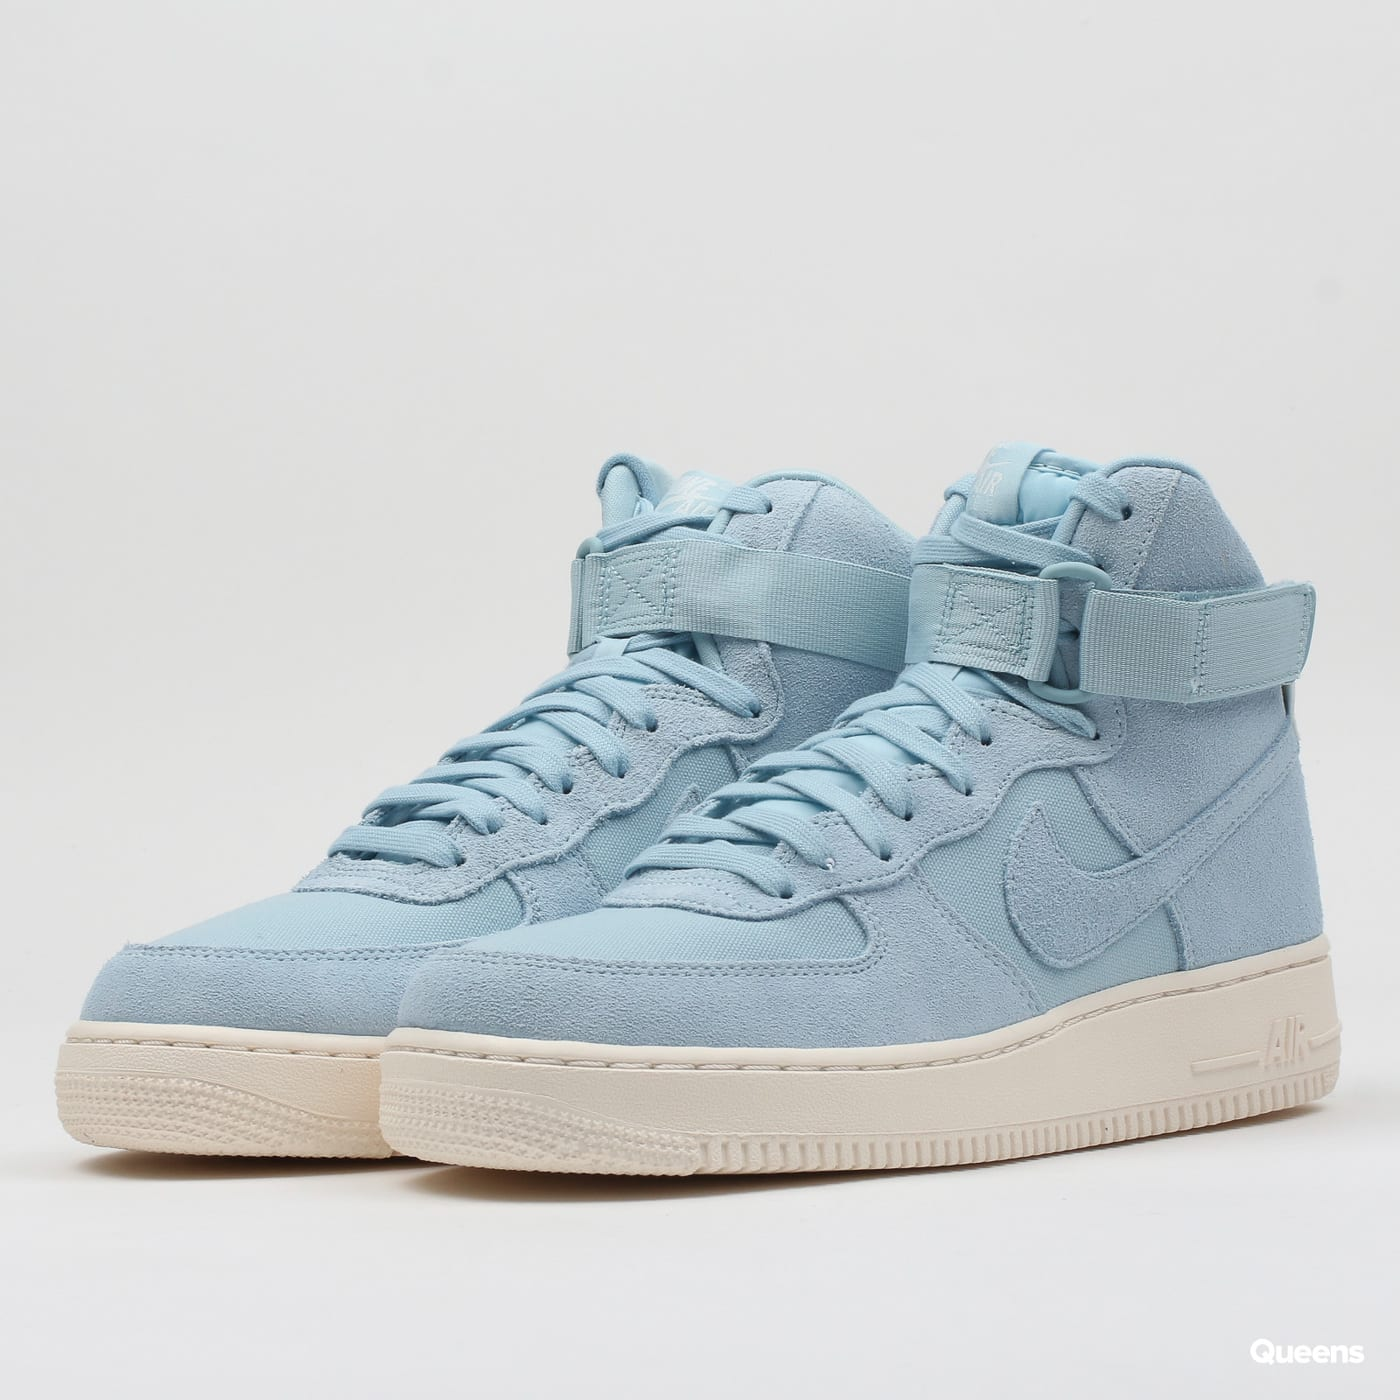 Sneakers Nike Air Force 1 High  07 Suede (AQ8649-400)– Queens 💚 1524c4e475ef